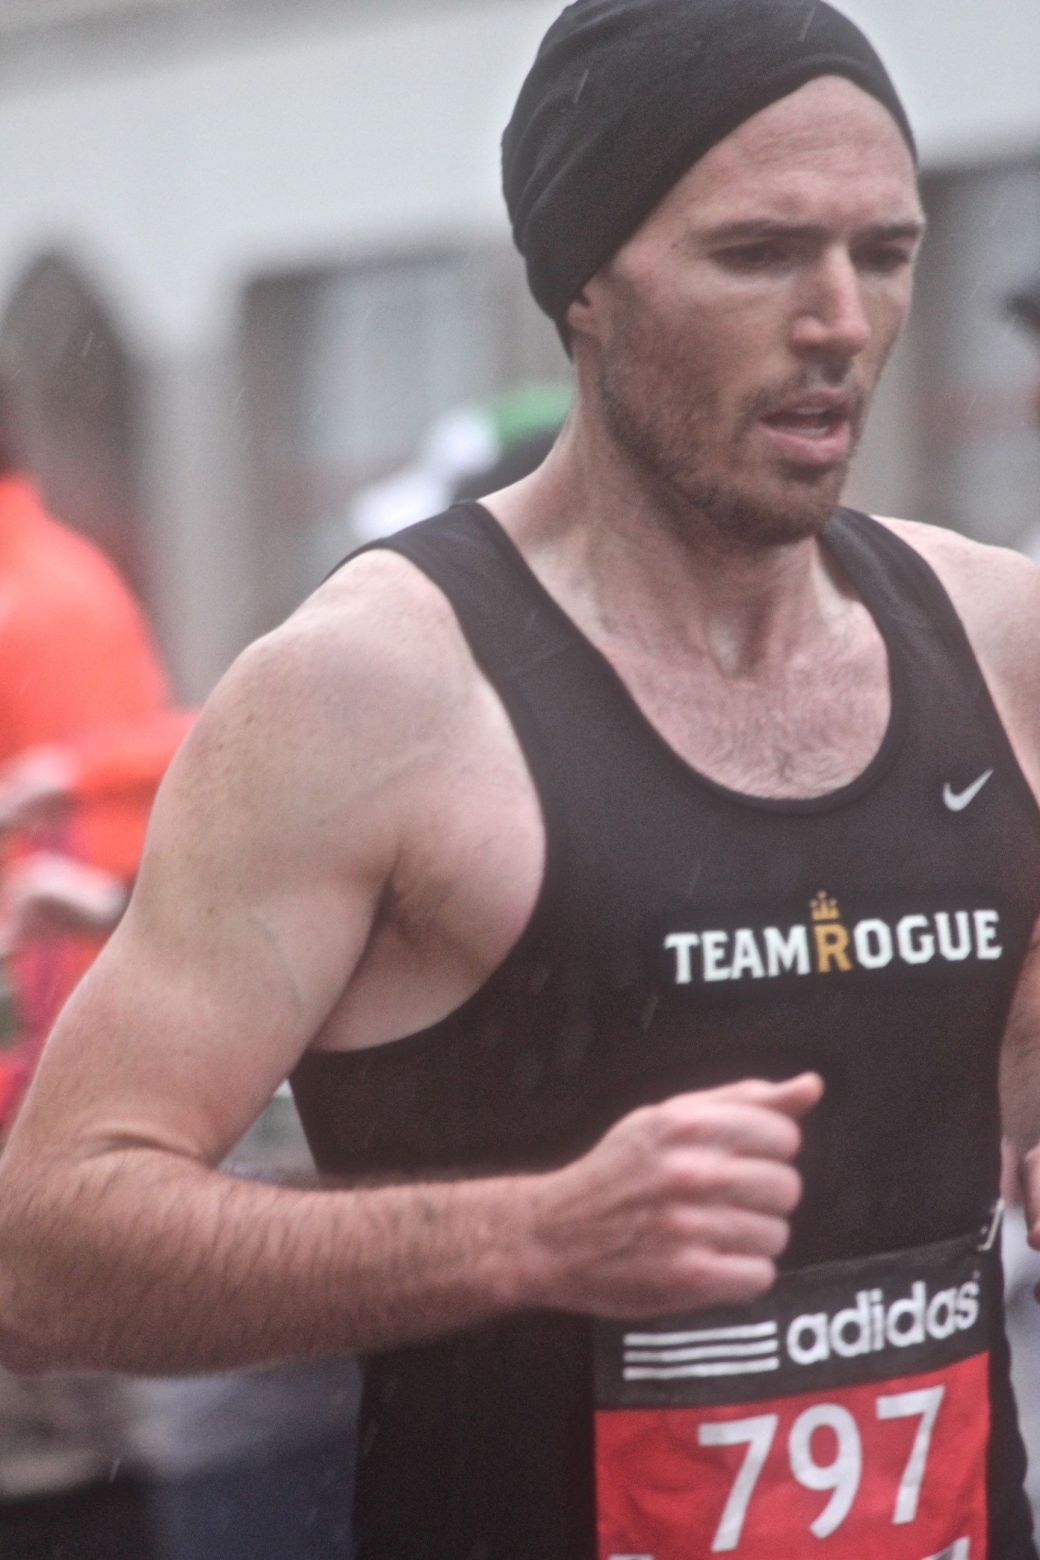 boston marathon april 20 2015 racer number 797